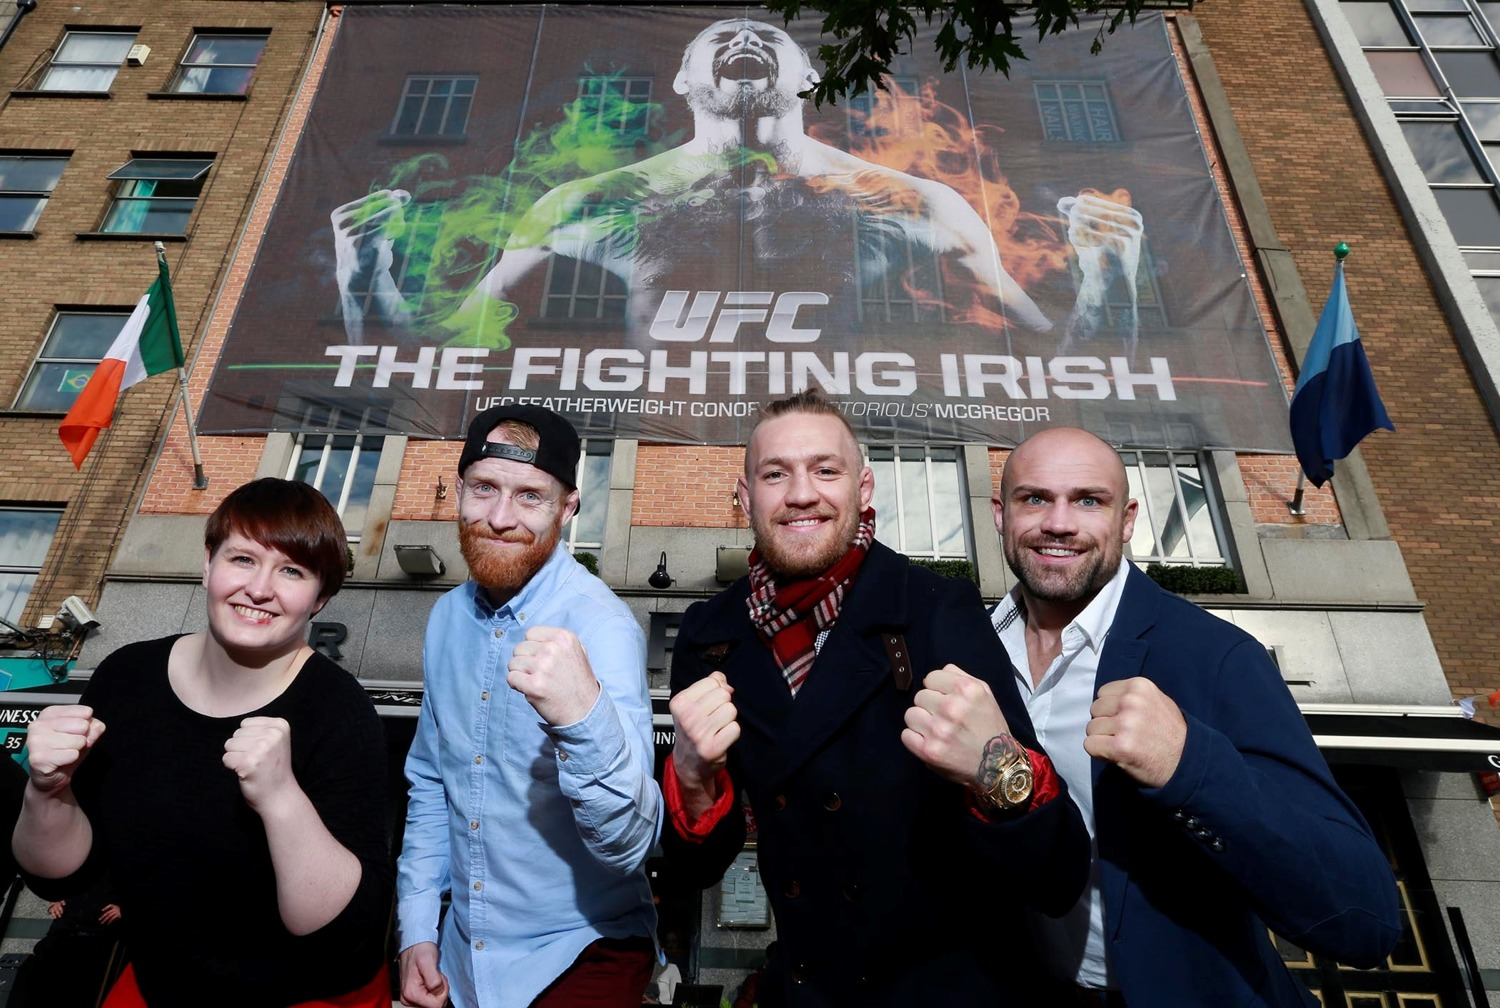 UFC Fighting Irish-Daily, Holohan, McGregor, Pendred